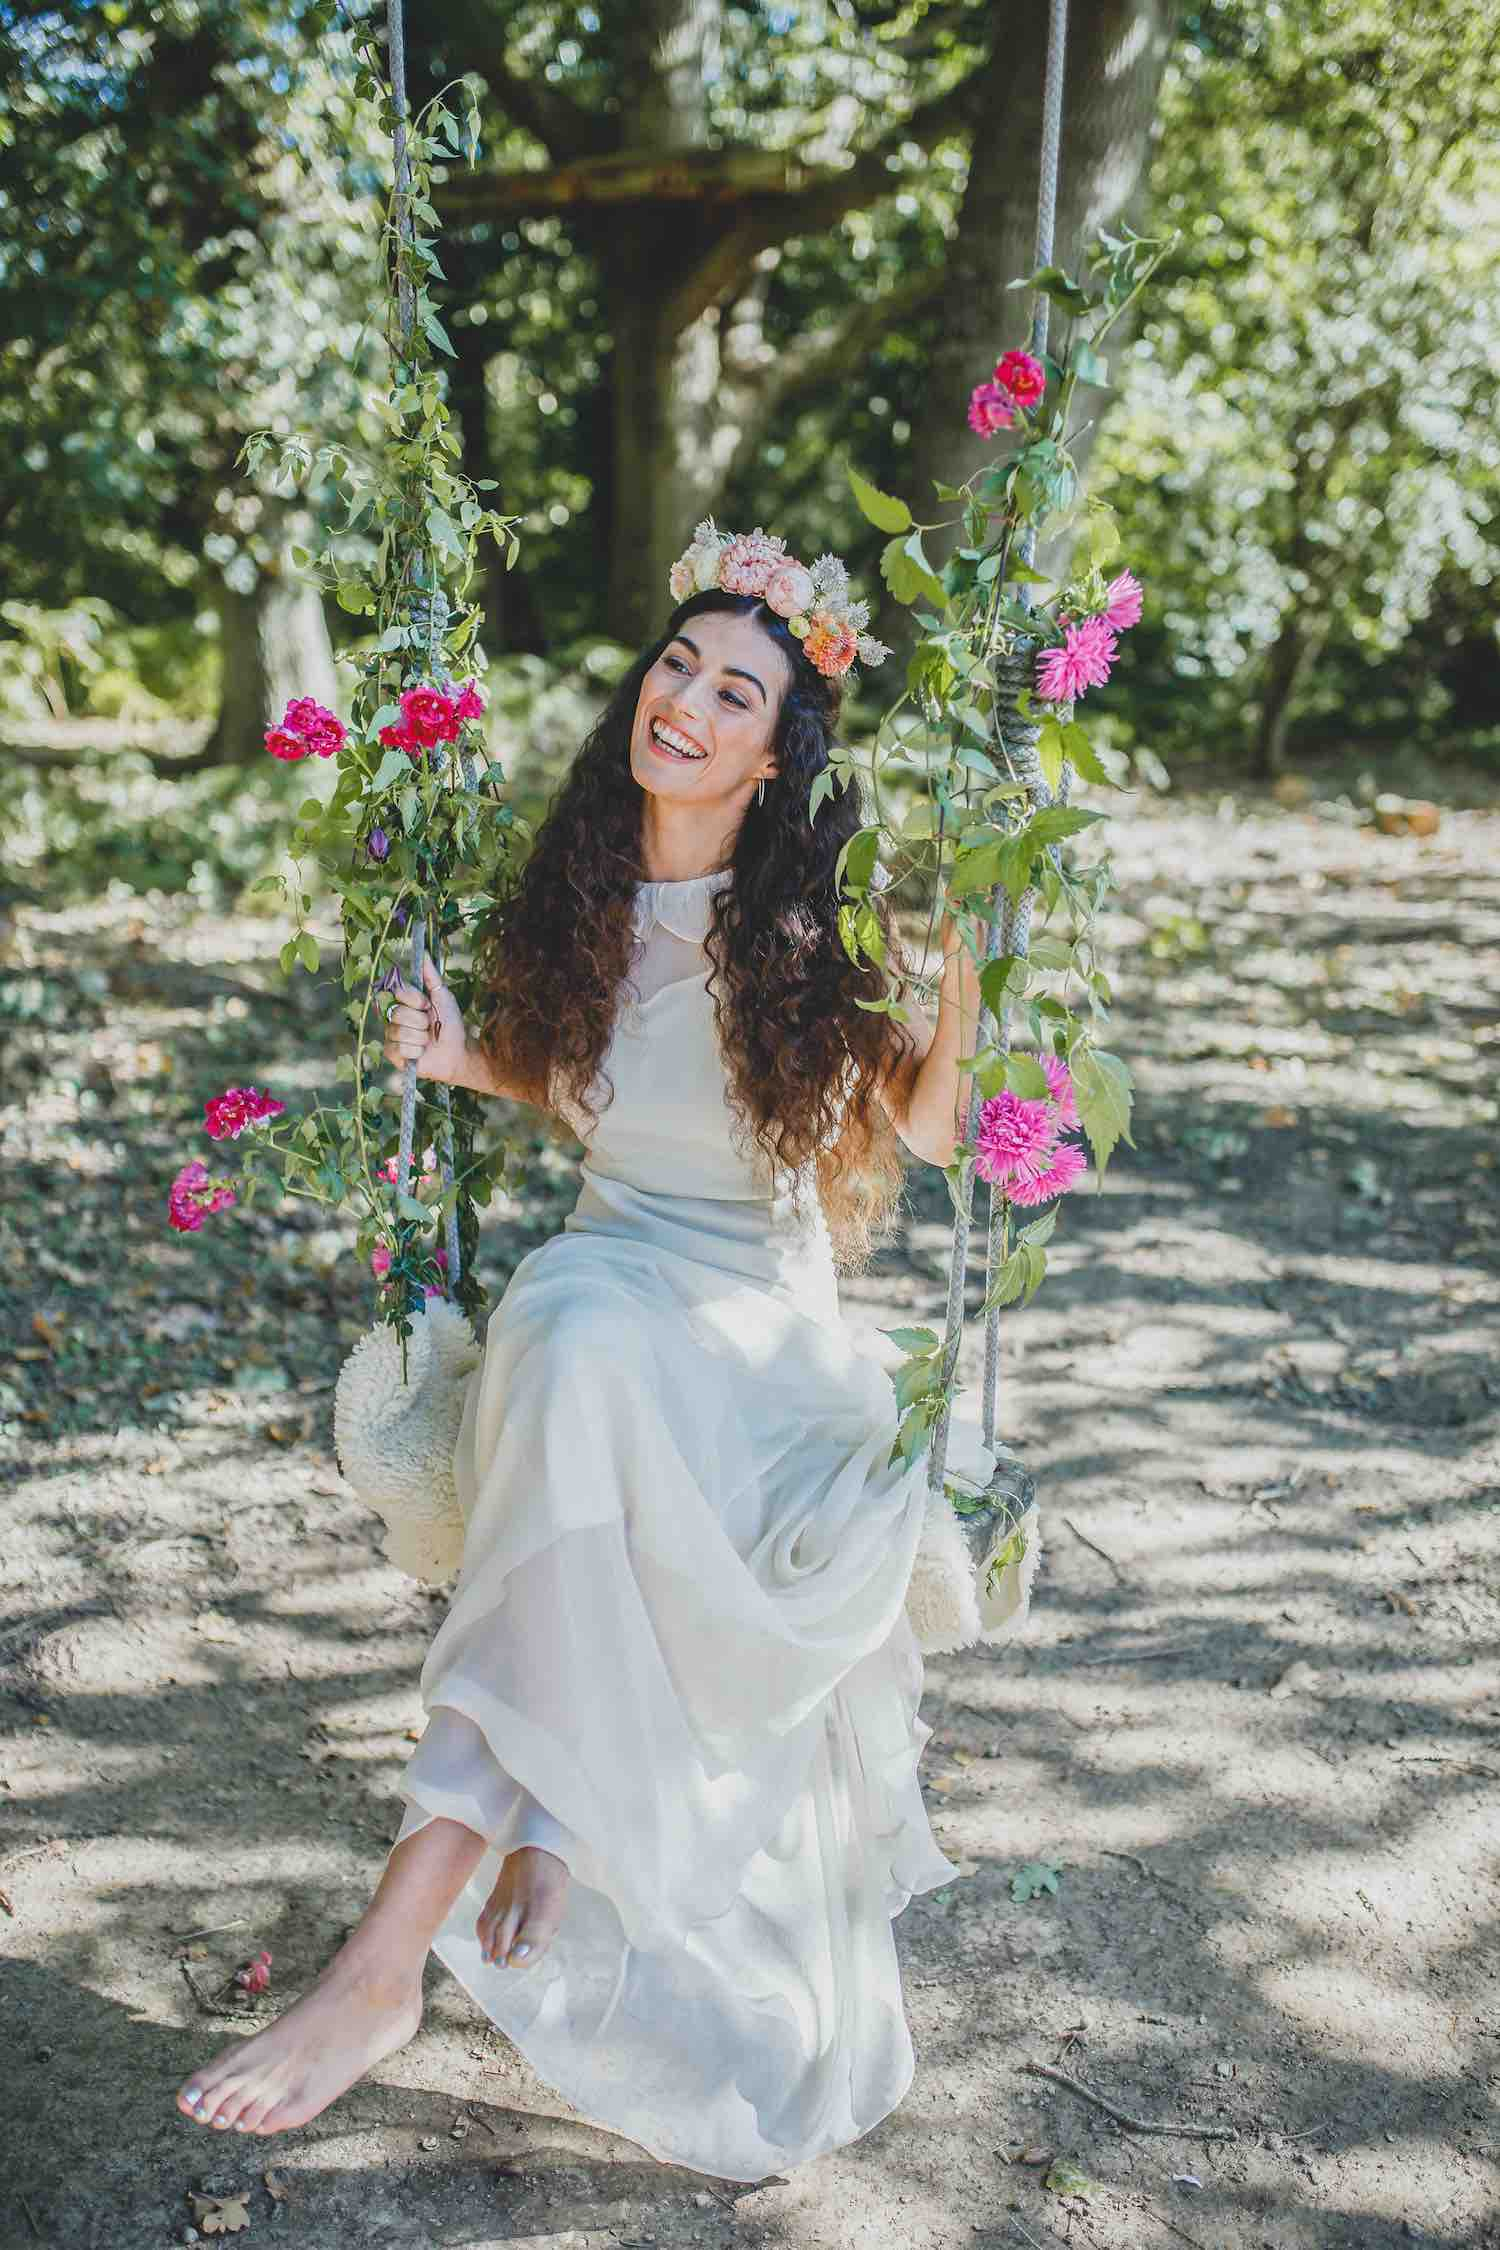 Bride on rope swing with flowers